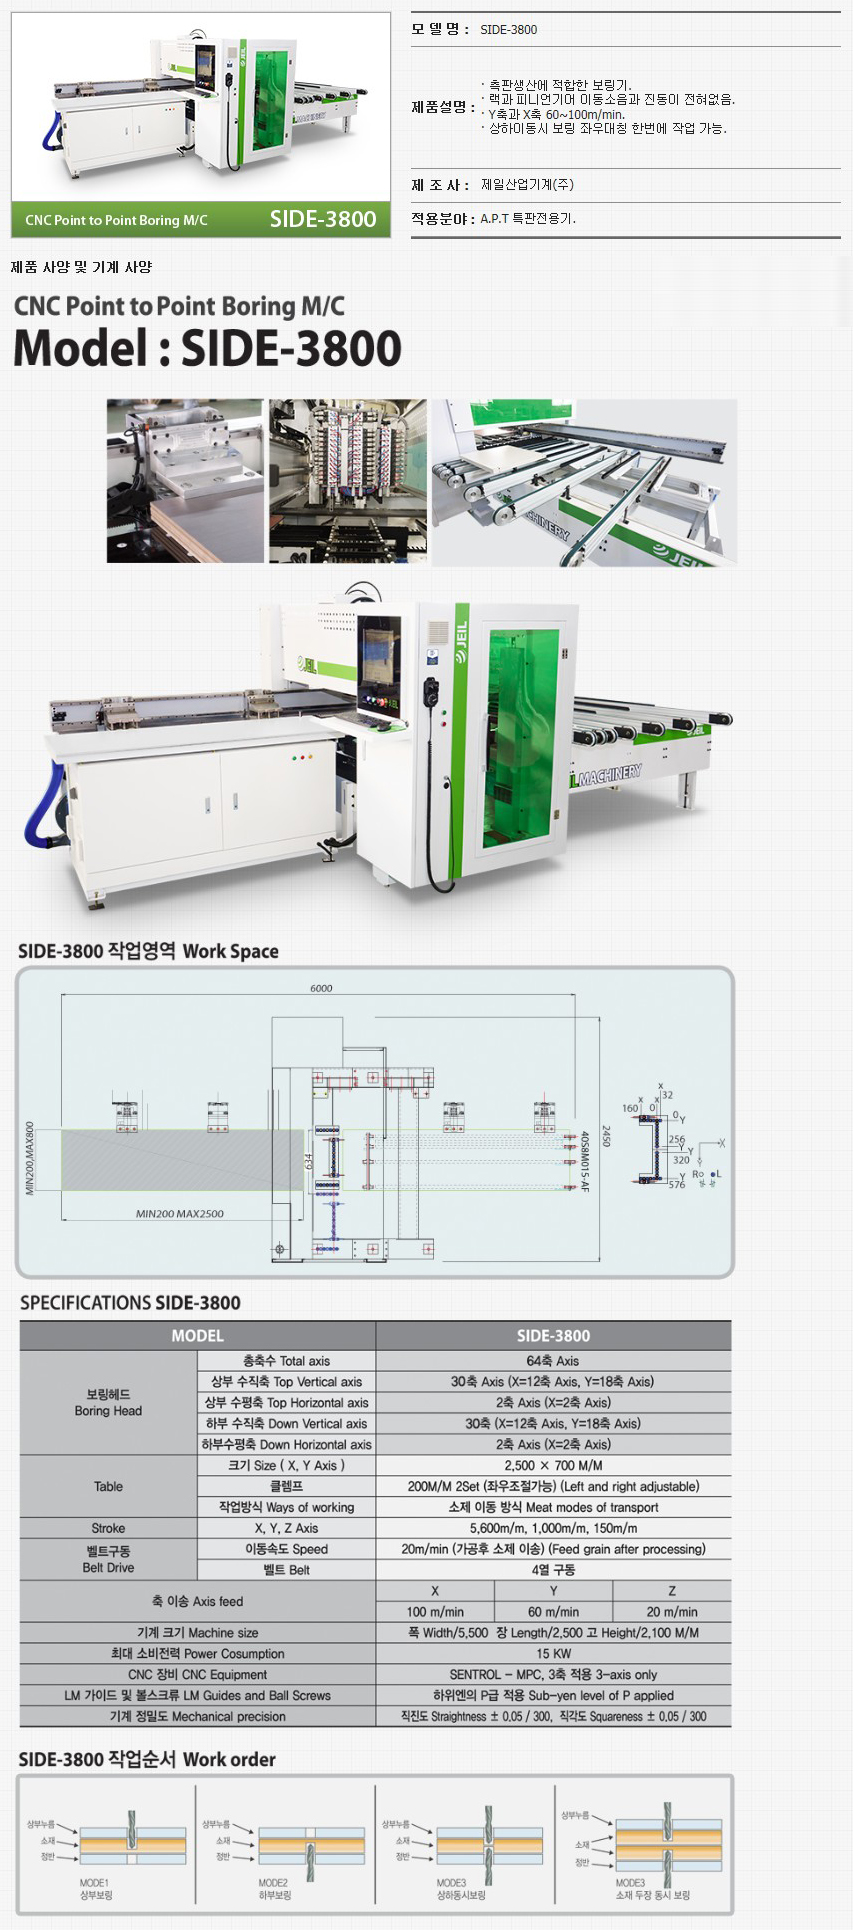 제일산업기계(주) CNC Point to Point Boring M/C SIDE-3800